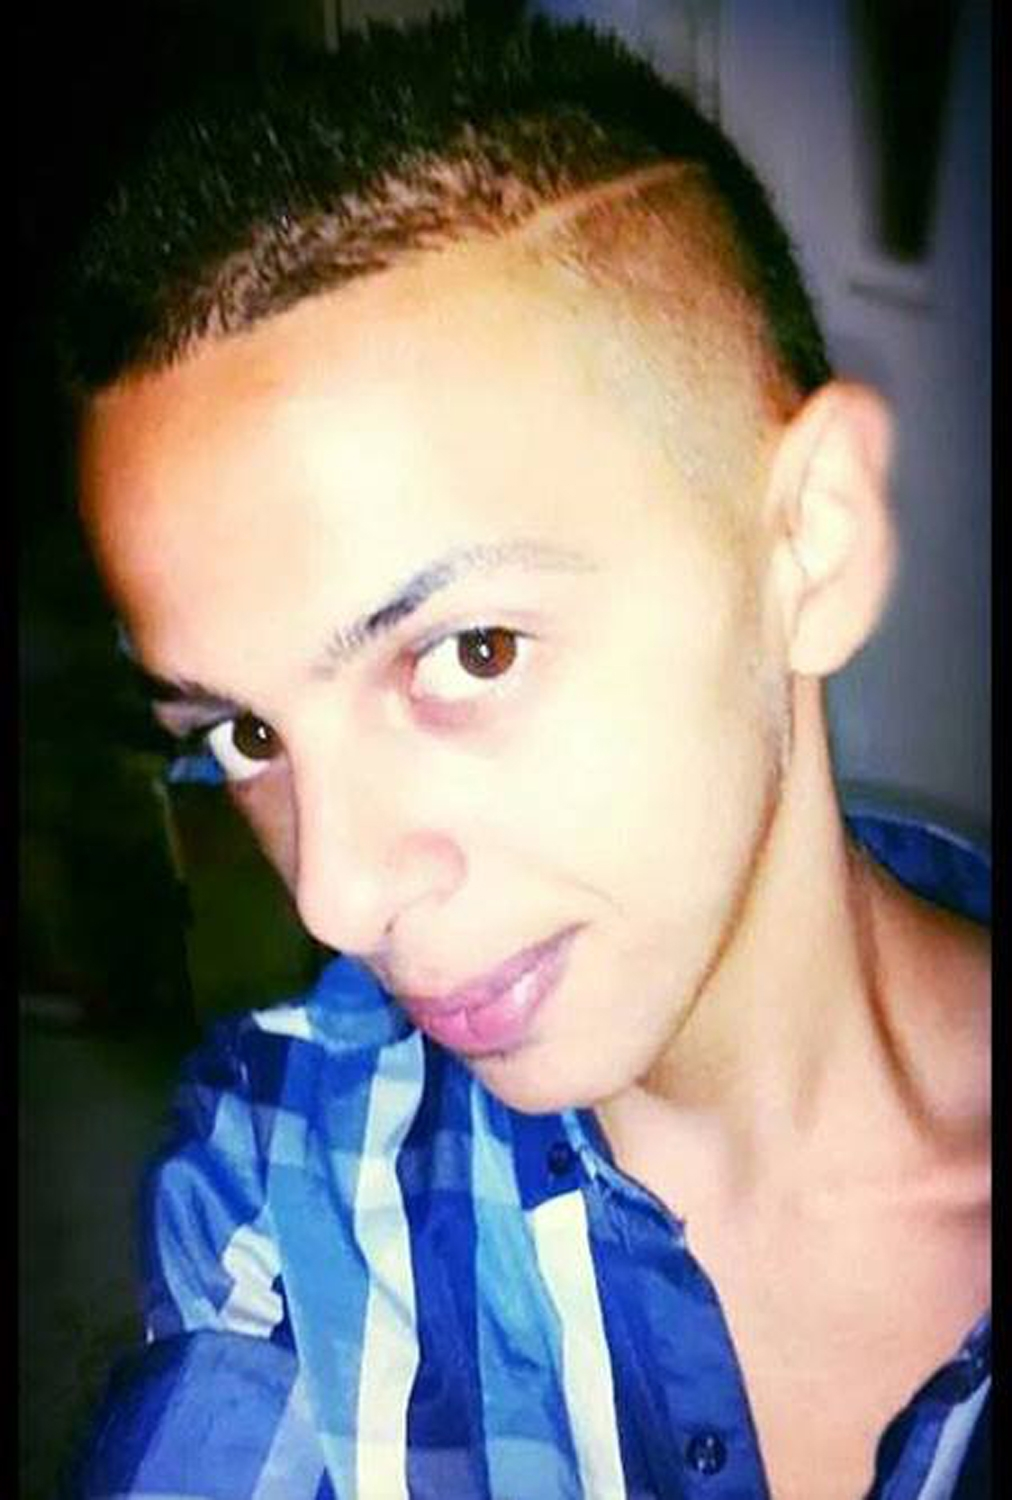 Mohammed Abu Khdeir was kidnapped from his eastern Jerusalem neighborhood on July 2, 2014 and murdered in a suspected revenge attack by Jewish extremists angered by the abduction and murders of three Israeli teens. (Flash 90)